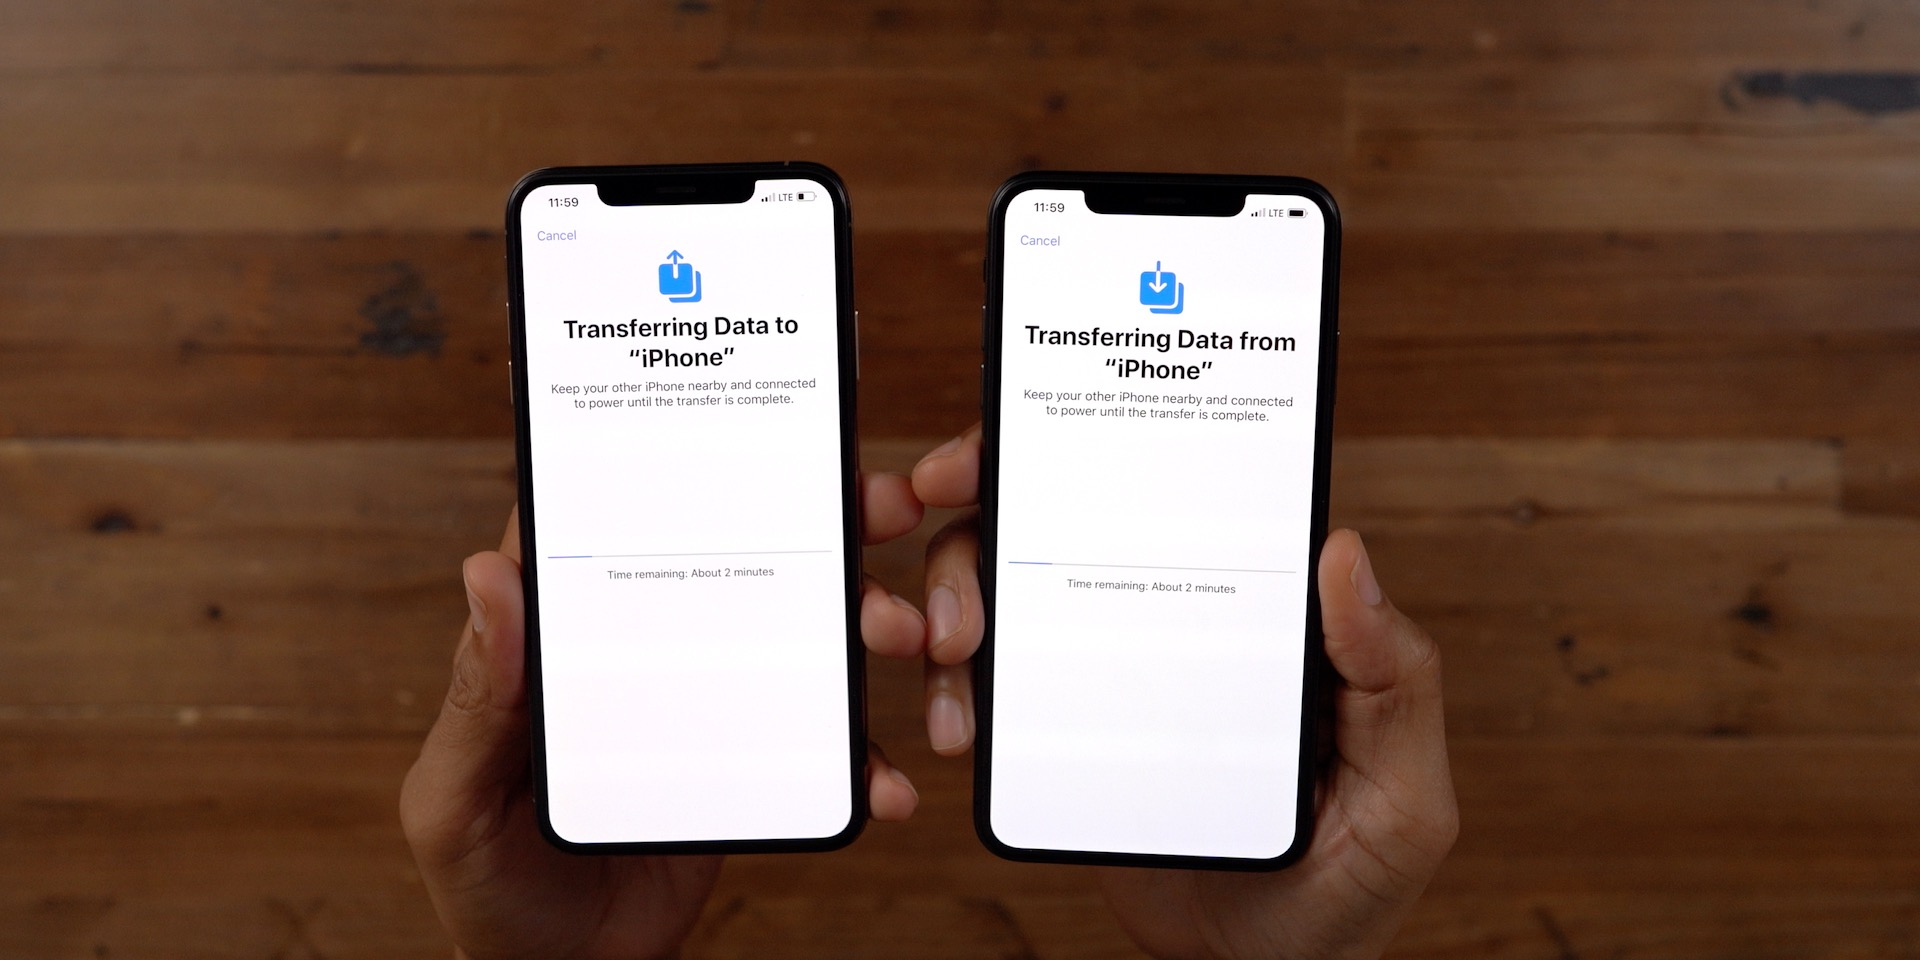 How to use the iPhone migration tool in iOS 12 4 - 9to5Mac